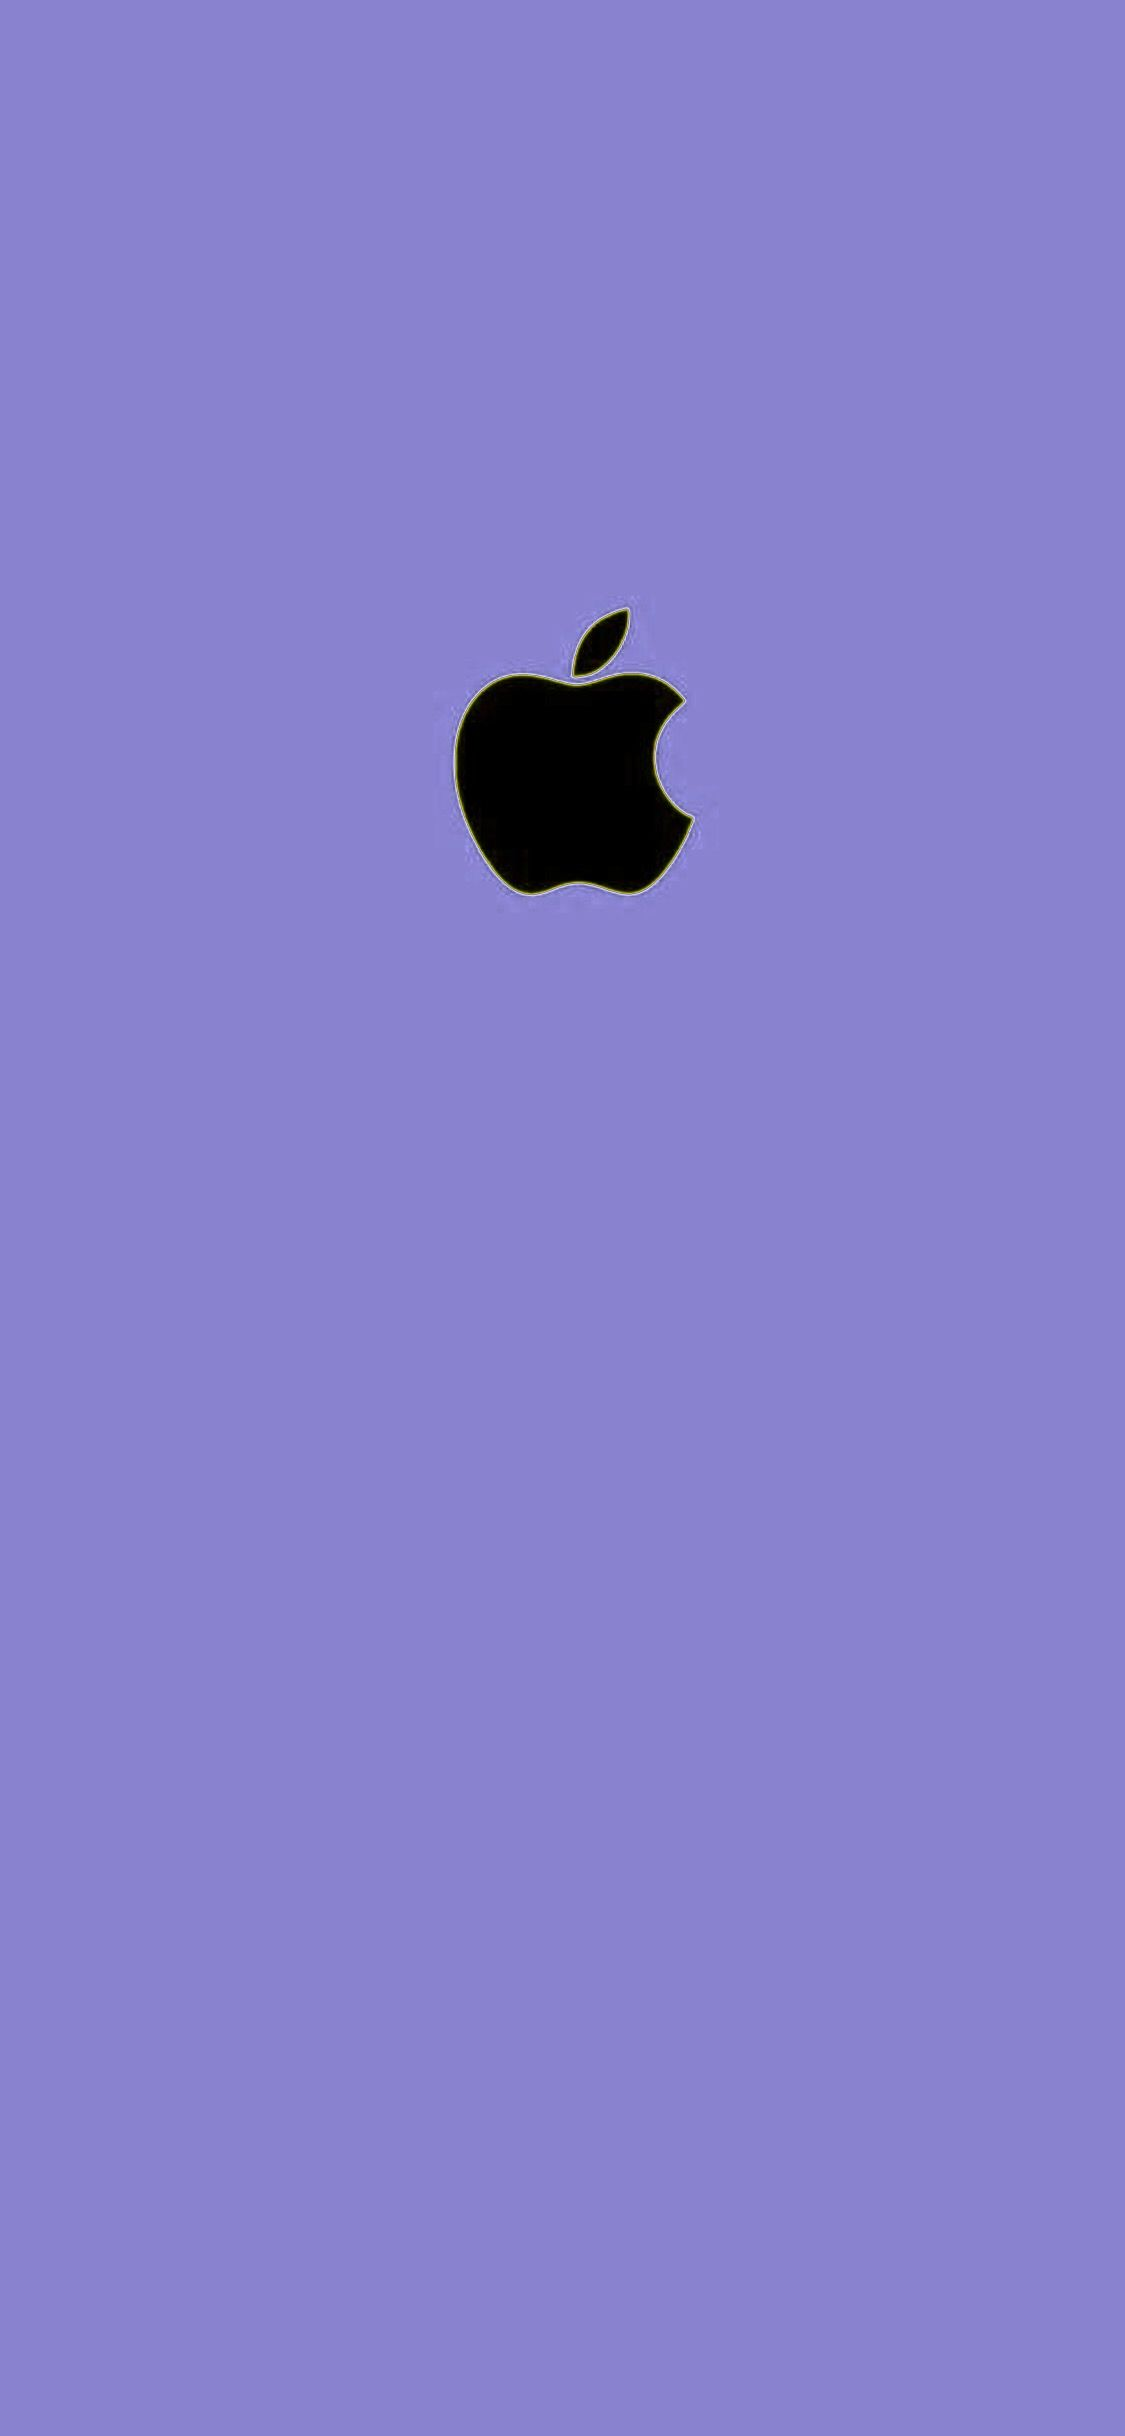 Ios13 Iphonewallpaper Apple Logo Colorful Lockscreen Homescreen Iphonexr Iphonexs Apple Iphone Wallpaper Hd Apple Wallpaper Iphone Ipad Mini Wallpaper